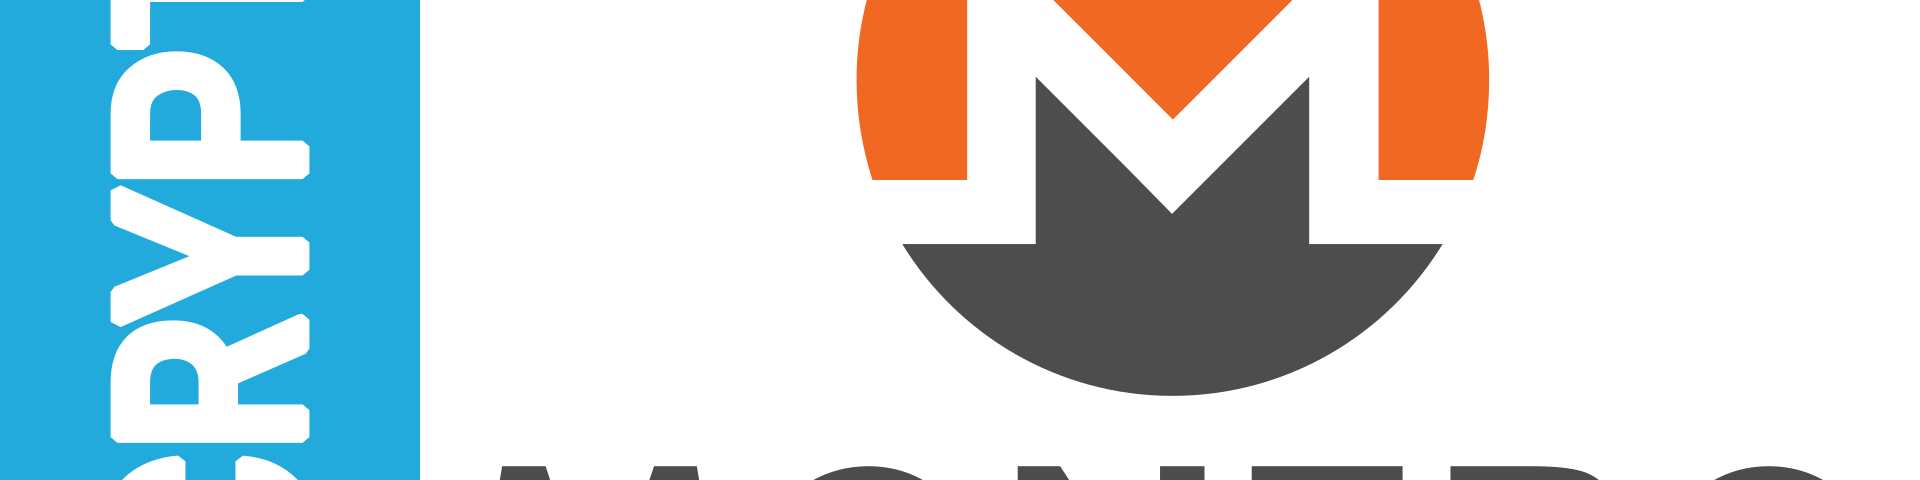 How to install a Monero GUI wallet in Linux